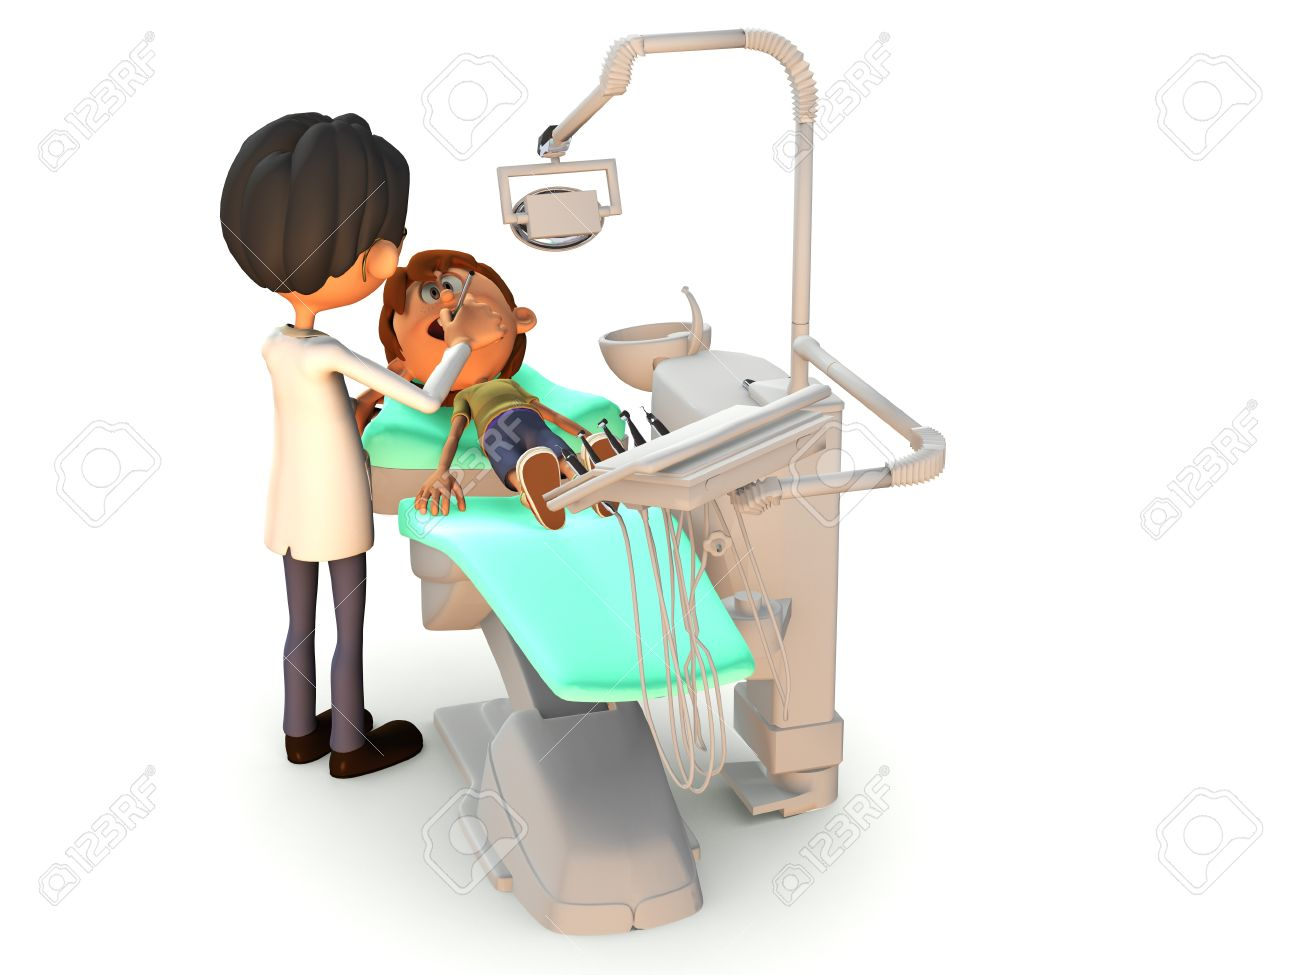 A young cartoon boy getting a dental exam by a dentist. White background. Stock Photo - 9549367